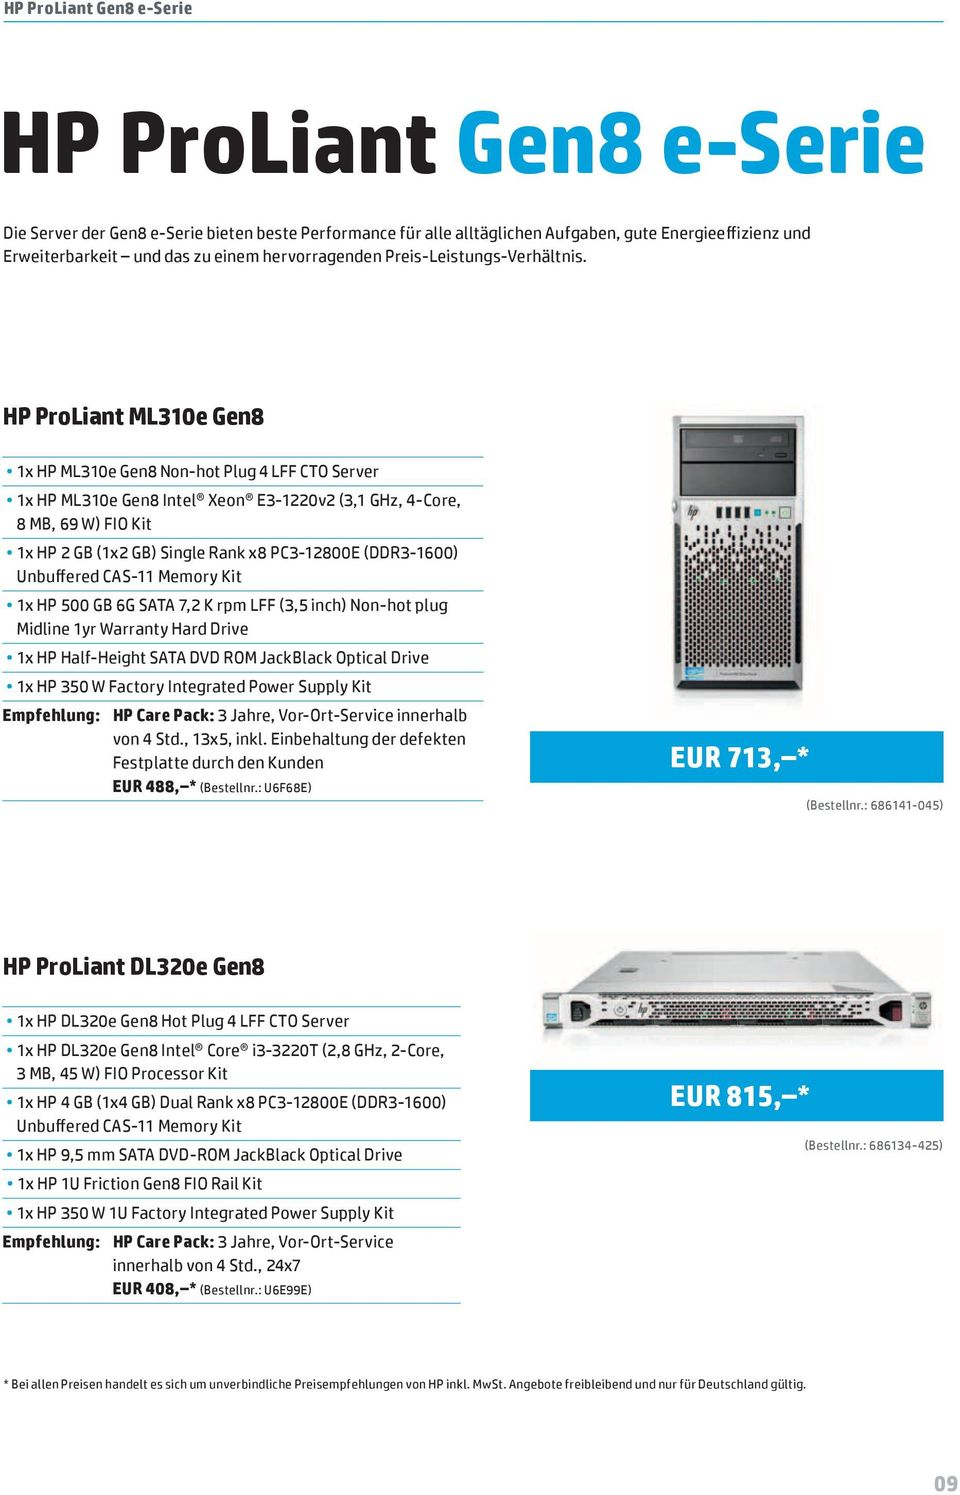 HP ProLiant ML310e Gen8 1x HP ML310e Gen8 Non-hot Plug 4 LFF CTO Server 1x HP ML310e Gen8 Intel Xeon E3-1220v2 (3,1 GHz, 4-Core, 8 MB, 69 W) FIO Kit 1x HP 2 GB (1x2 GB) Single Rank x8 PC3-12800E